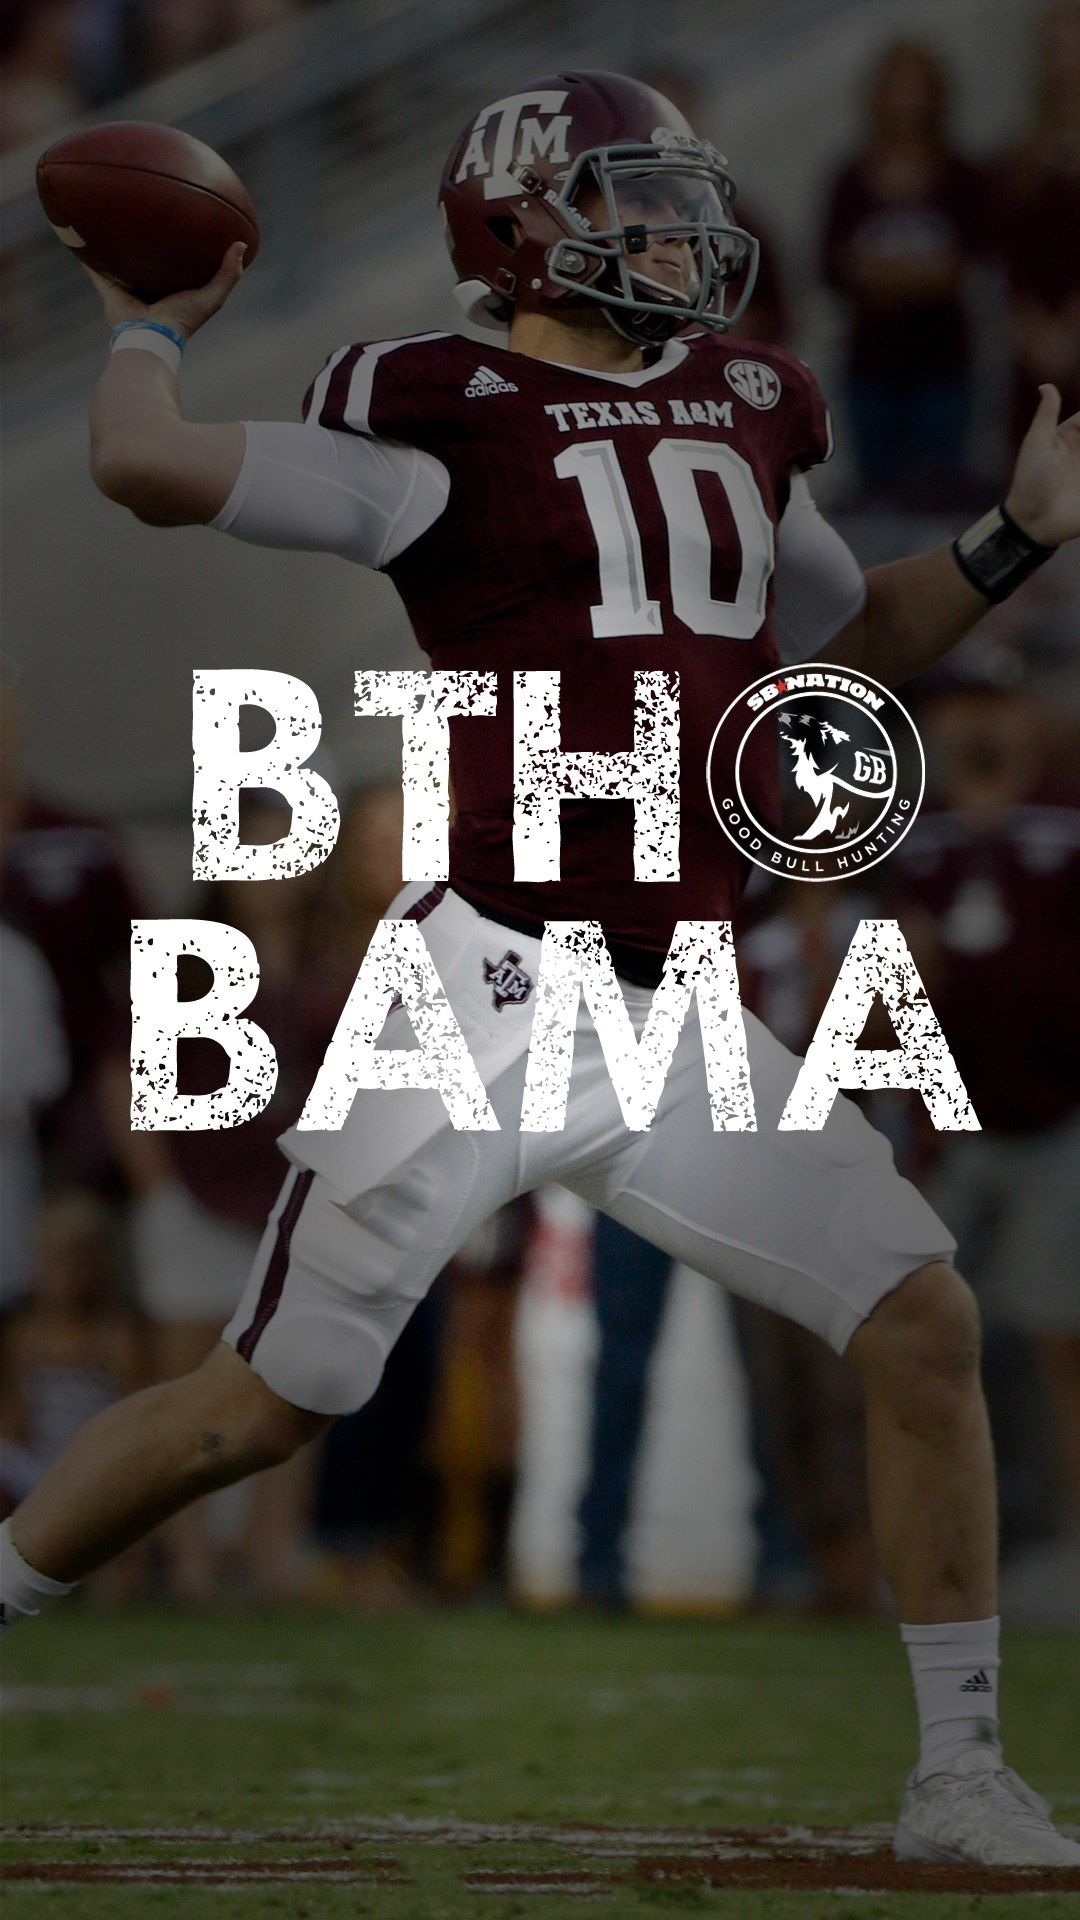 alabama-football-for-android-1080x1920-wallpaper-wp3602327